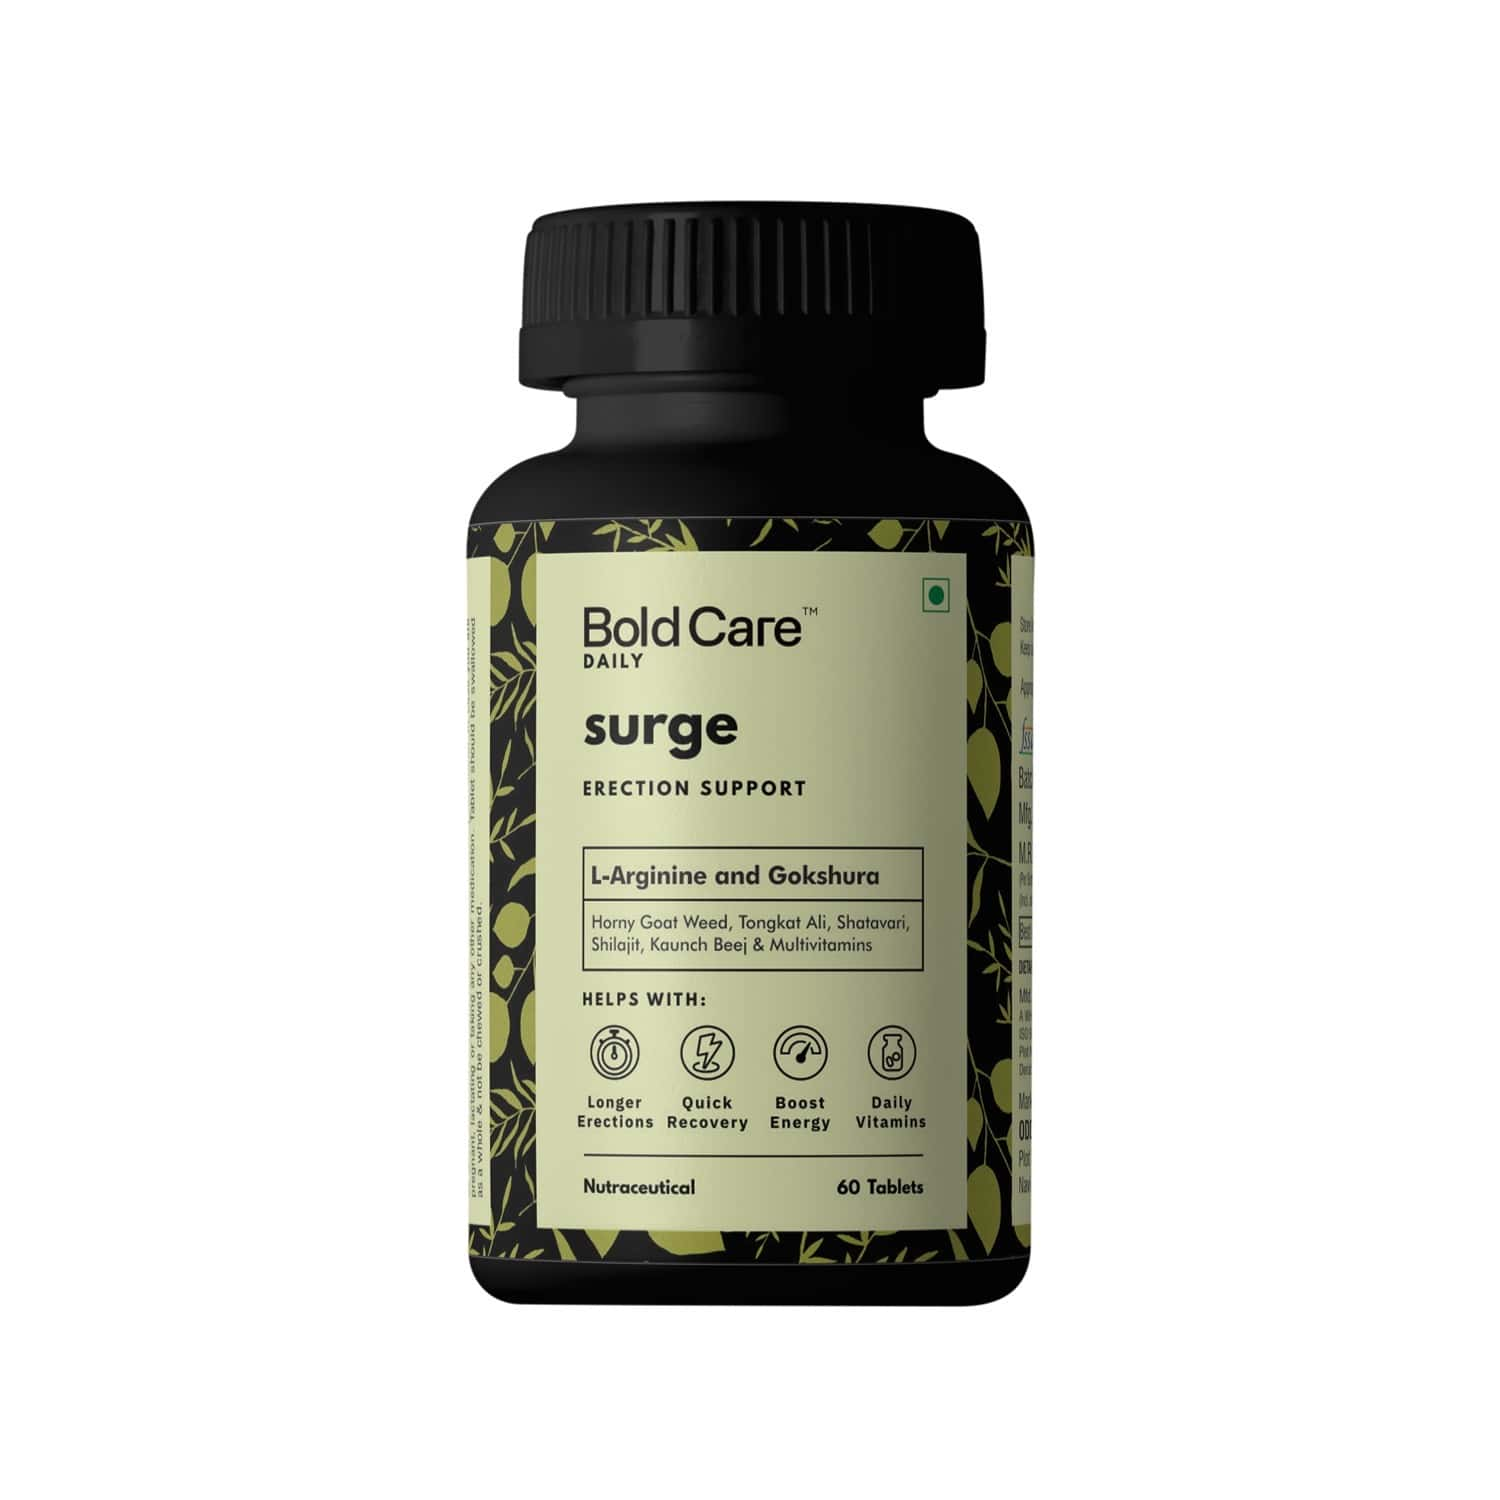 Bold Care Surge - 60 Tablets